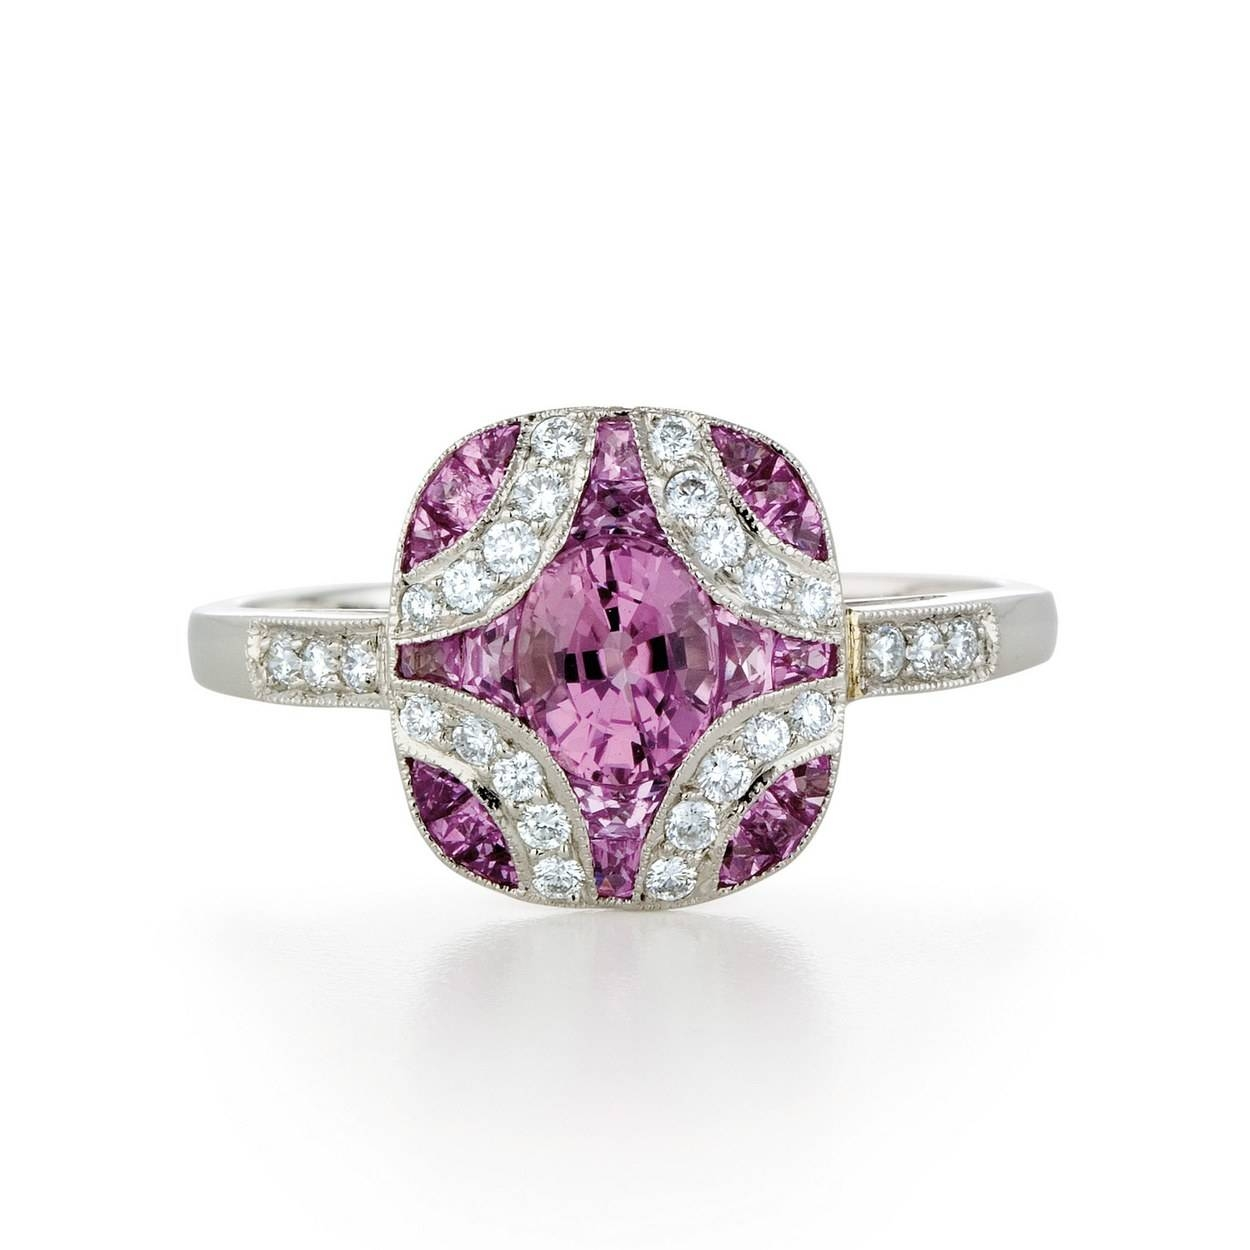 62 Diamond Engagement Rings Under $5,000 | Glamour In Pink Sapphire Engagement Rings With Diamonds (Gallery 9 of 15)